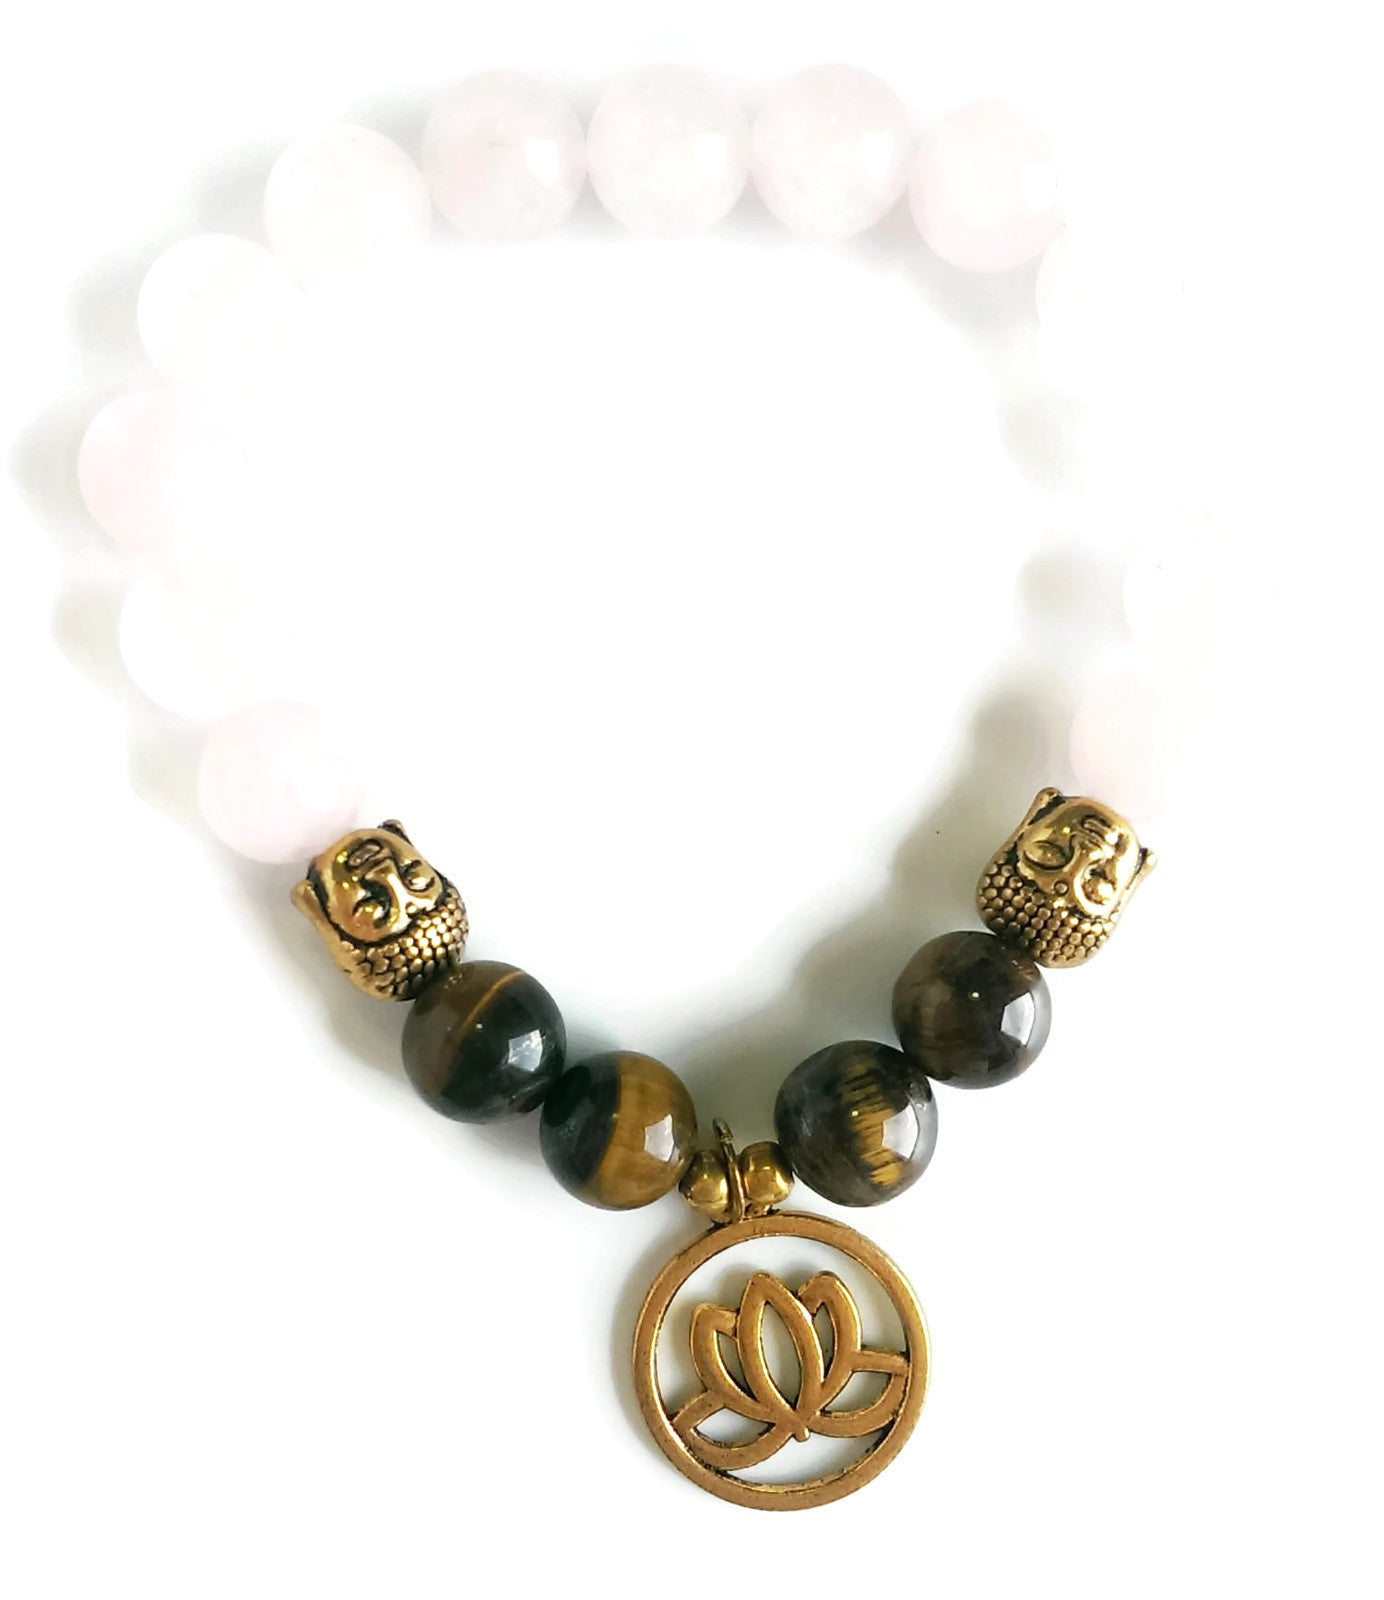 10mm Rose Quartz & Tiger Eye Stone Wrist Mala with Gold Buddha Head and Gold Lotus Charm, Stretch Bracelet | Meditation | Heart Chakra Focus